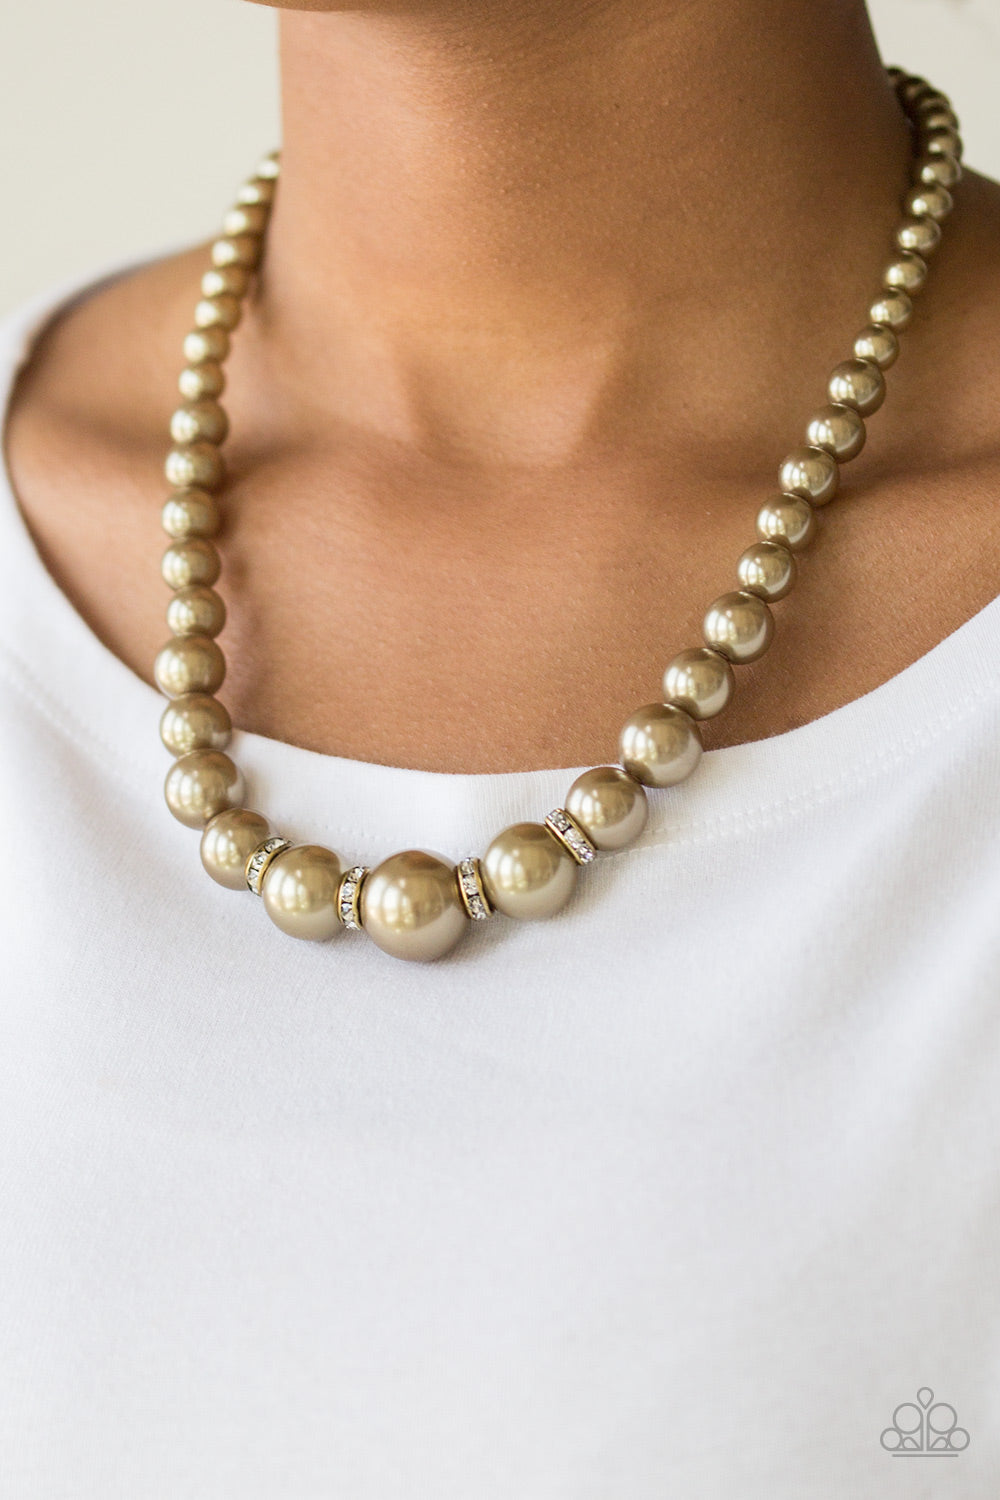 Paparazzi Accessories Party Pearls - Brass Necklaces